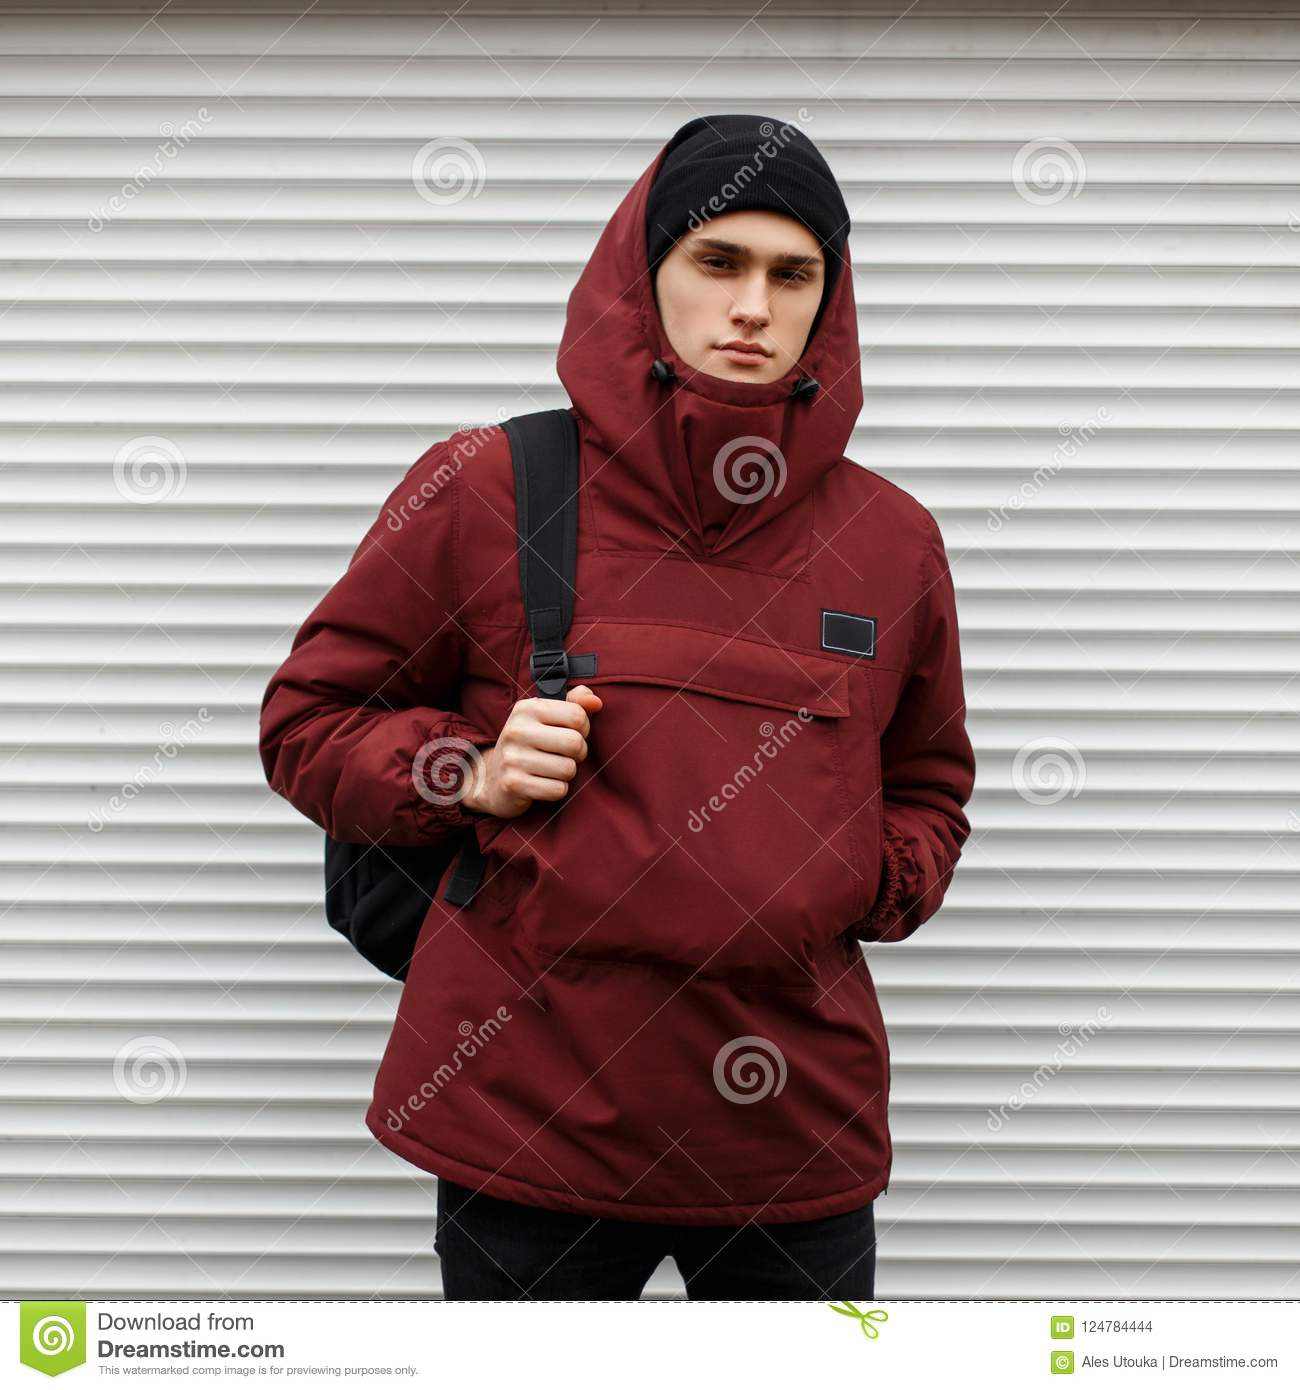 99244d48 Stylish young man in a fashionable winter red sports jacket with a cap of a  white metal wall on the street